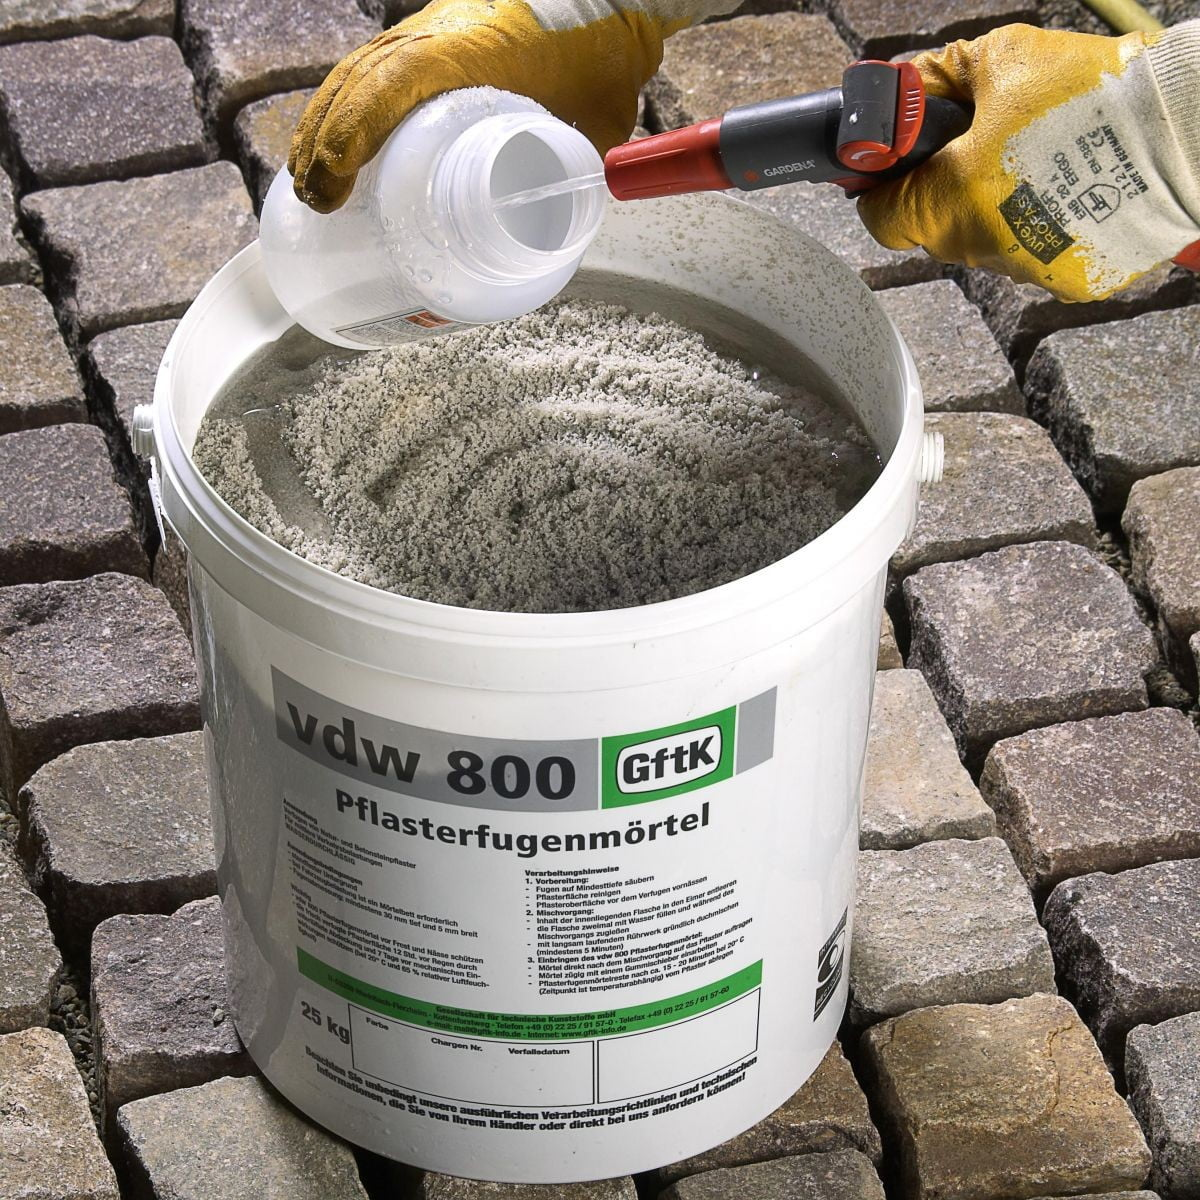 VDW jointing compound and natural stone setts